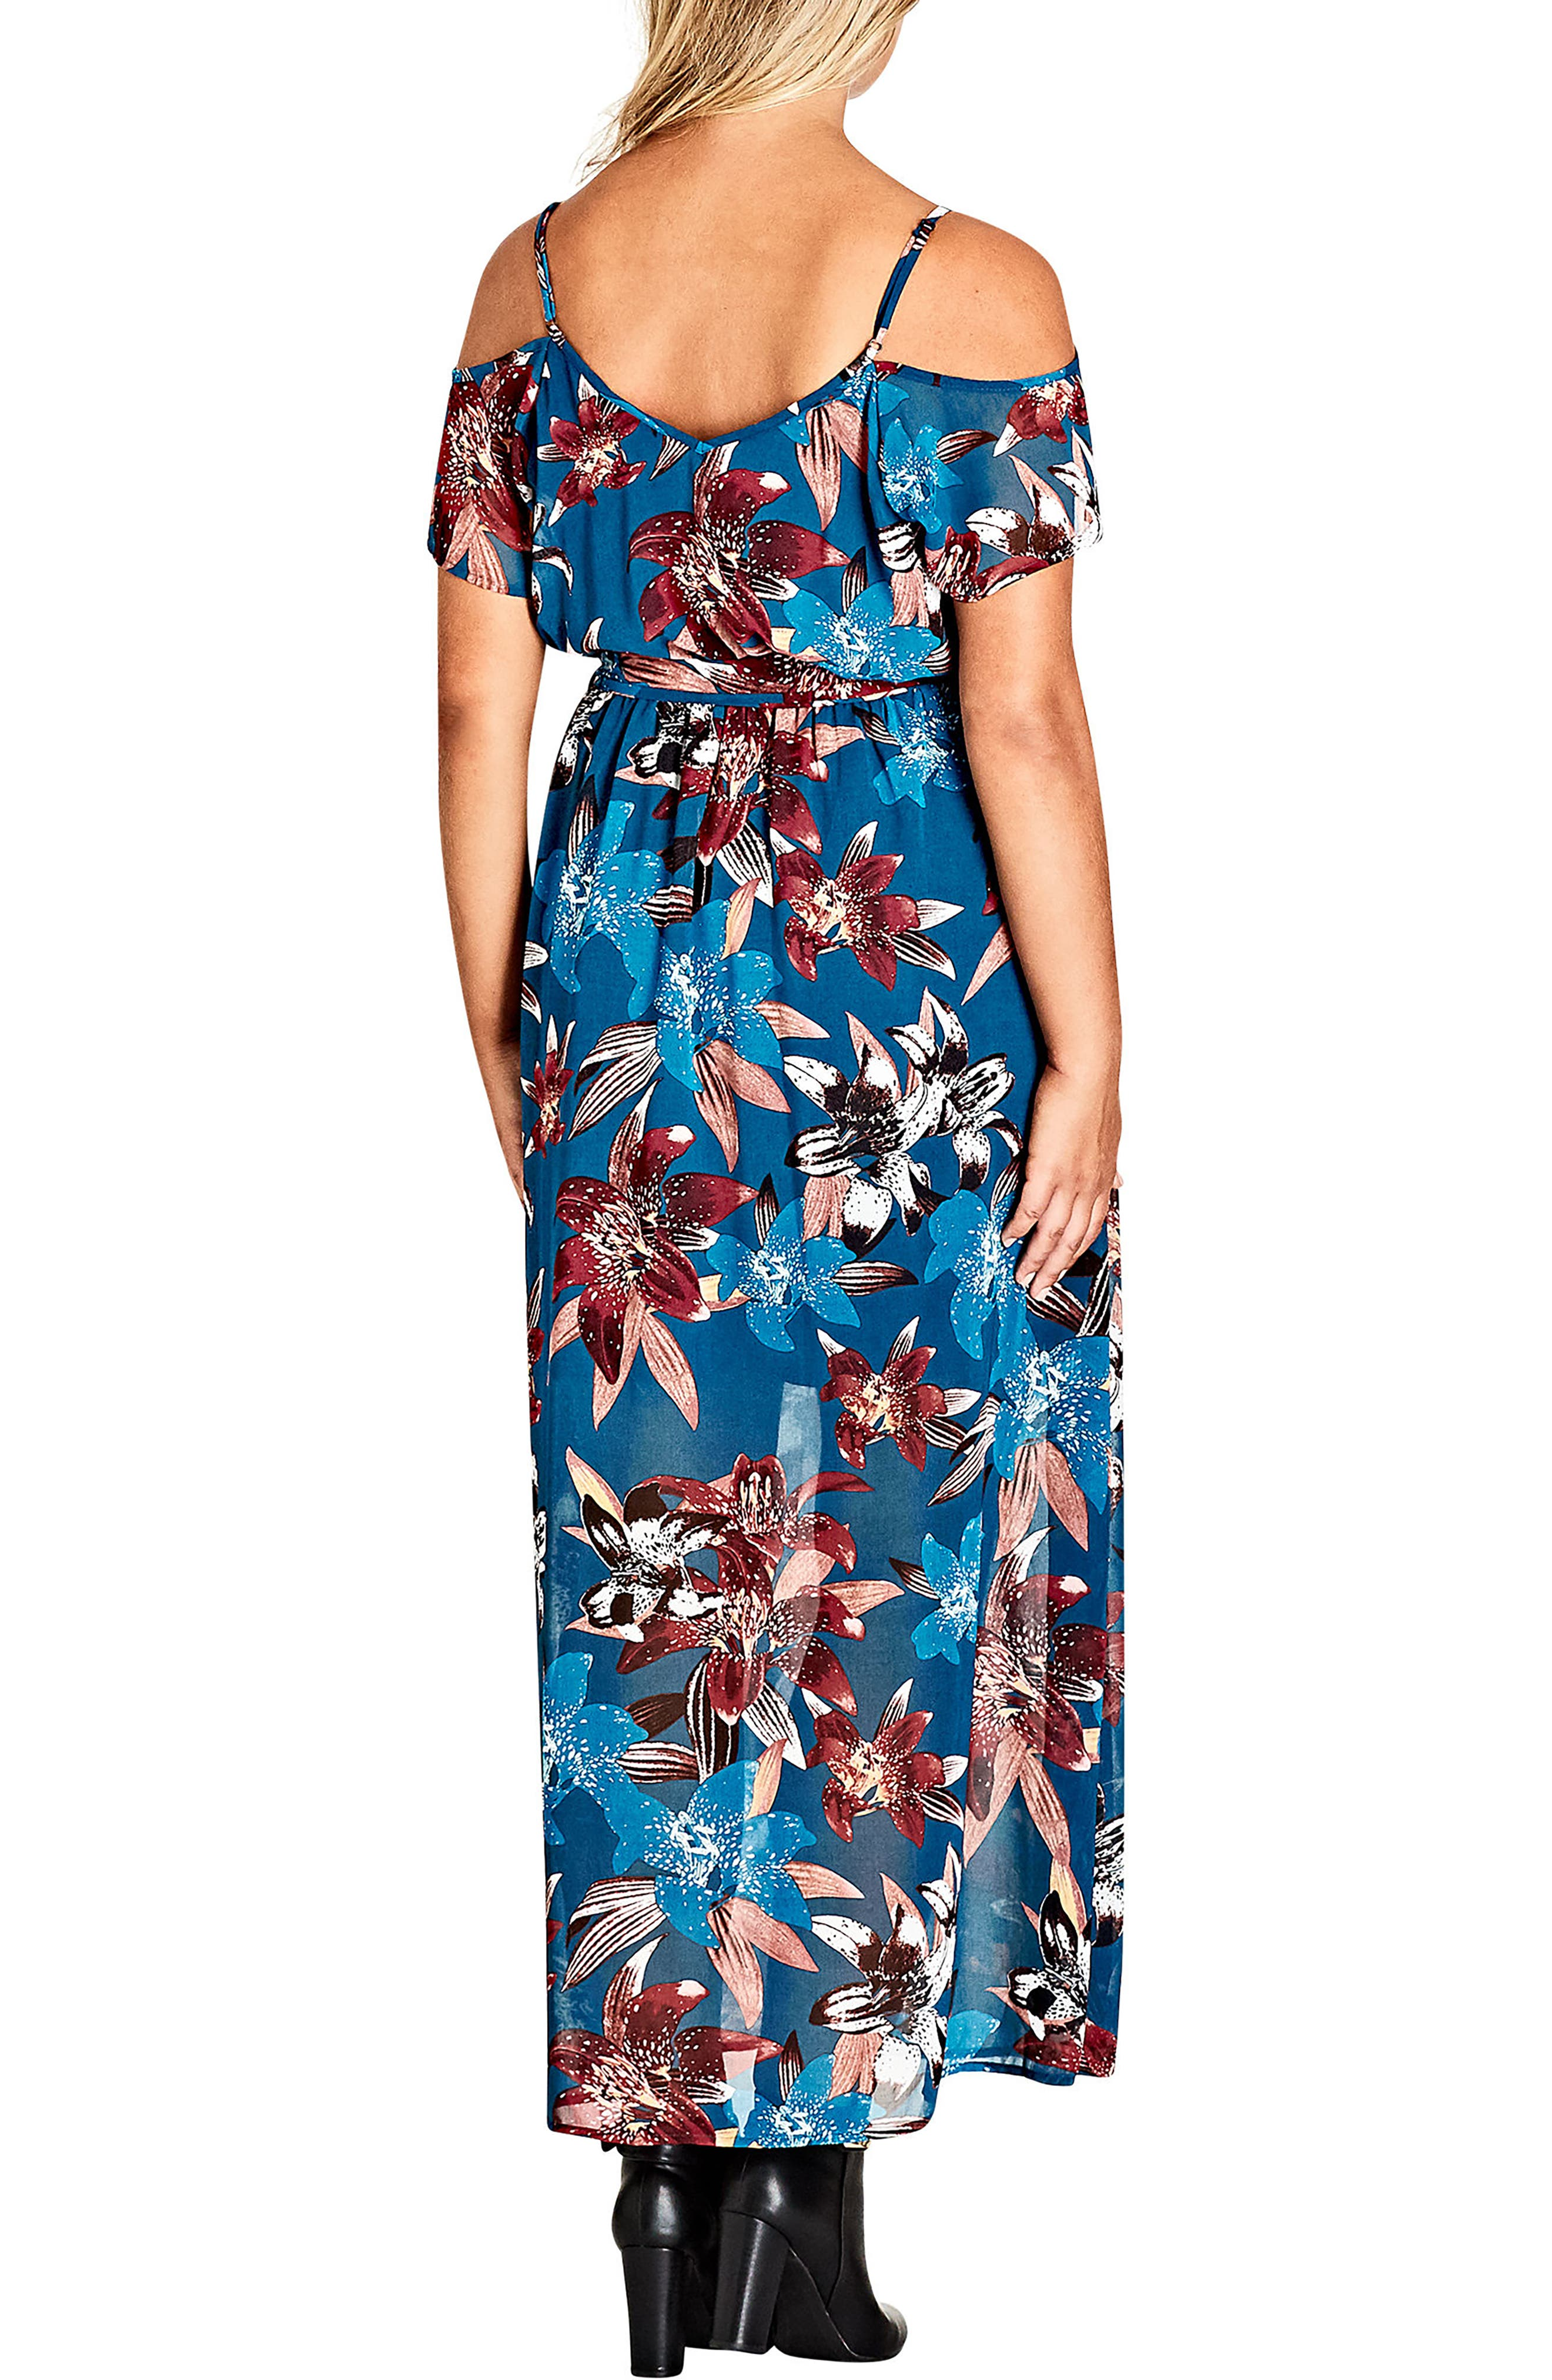 Fall Lily Off the Shoulder Maxi Dress,                             Alternate thumbnail 2, color,                             001